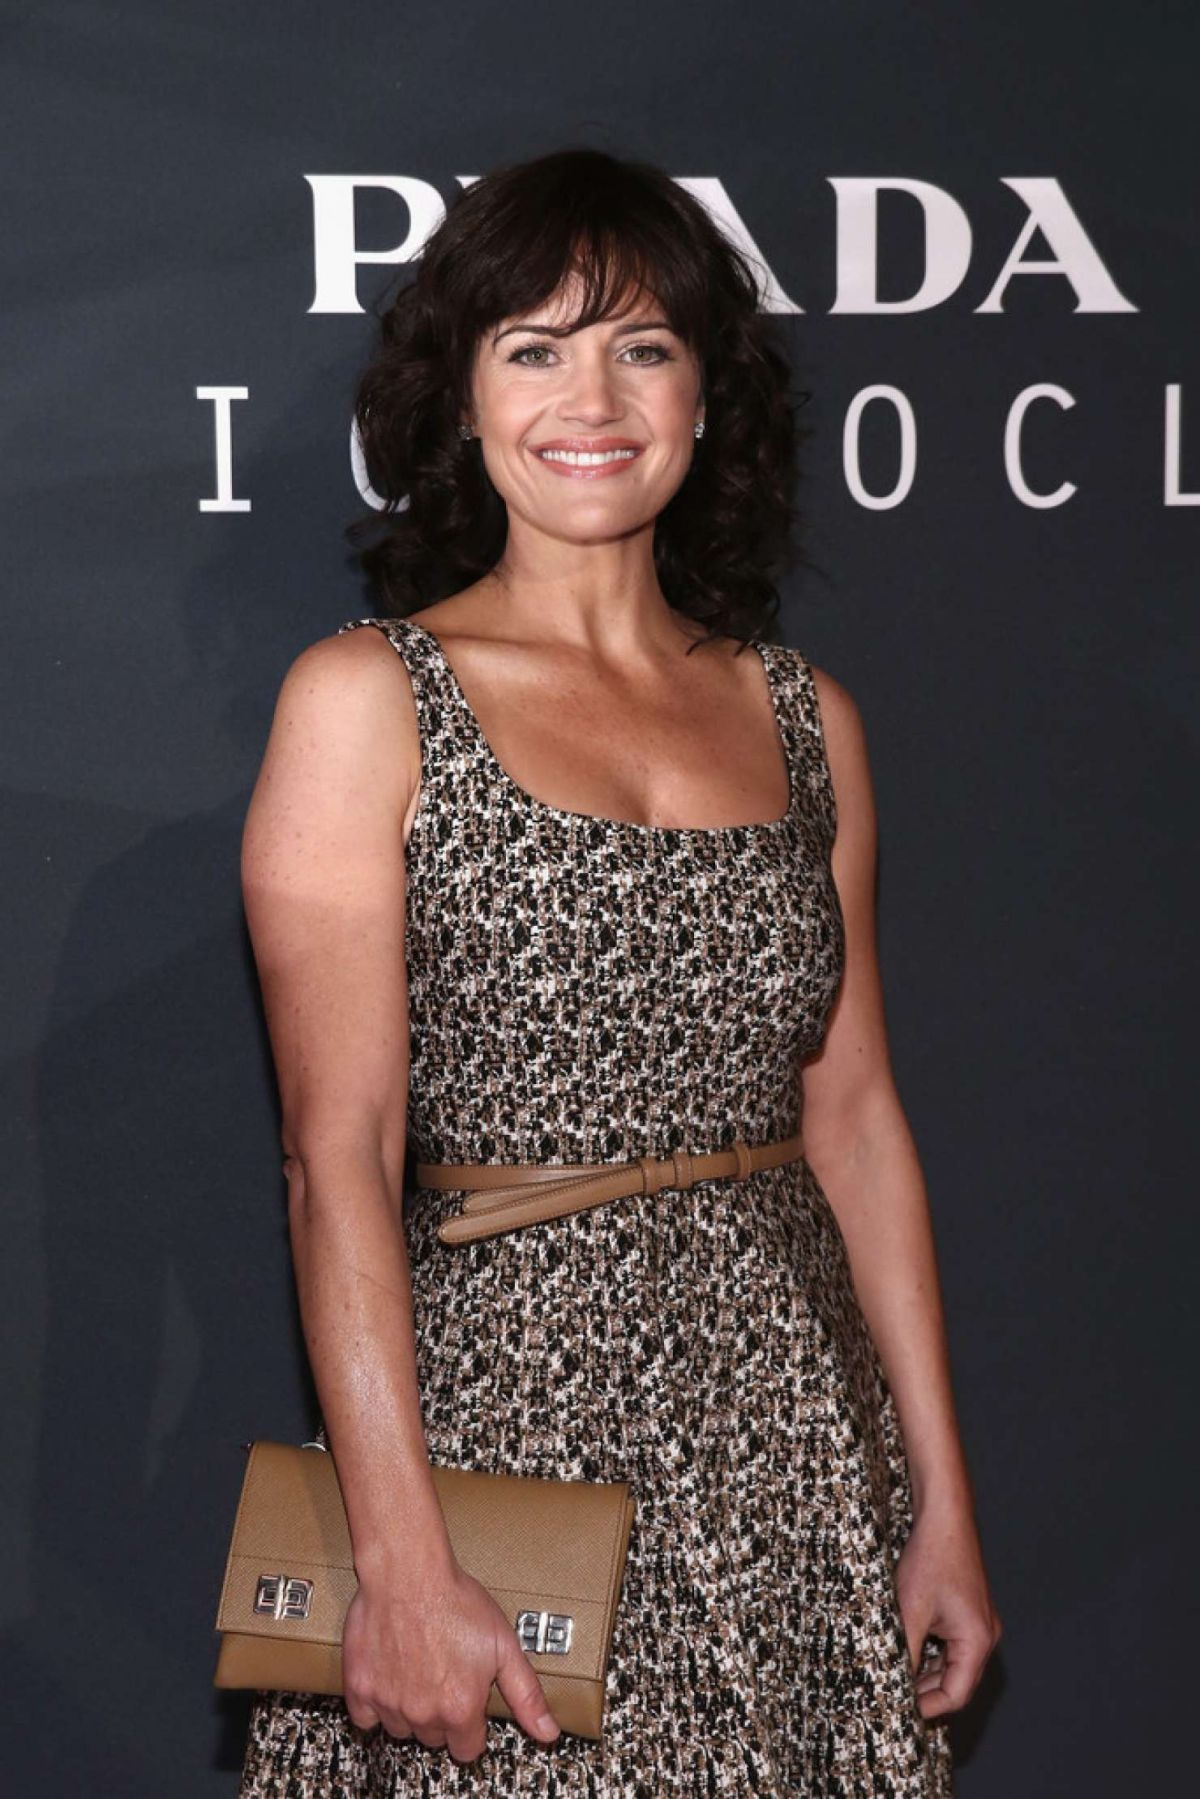 CARLA GUGINO at Prada Presents The Iconoclasts in New York